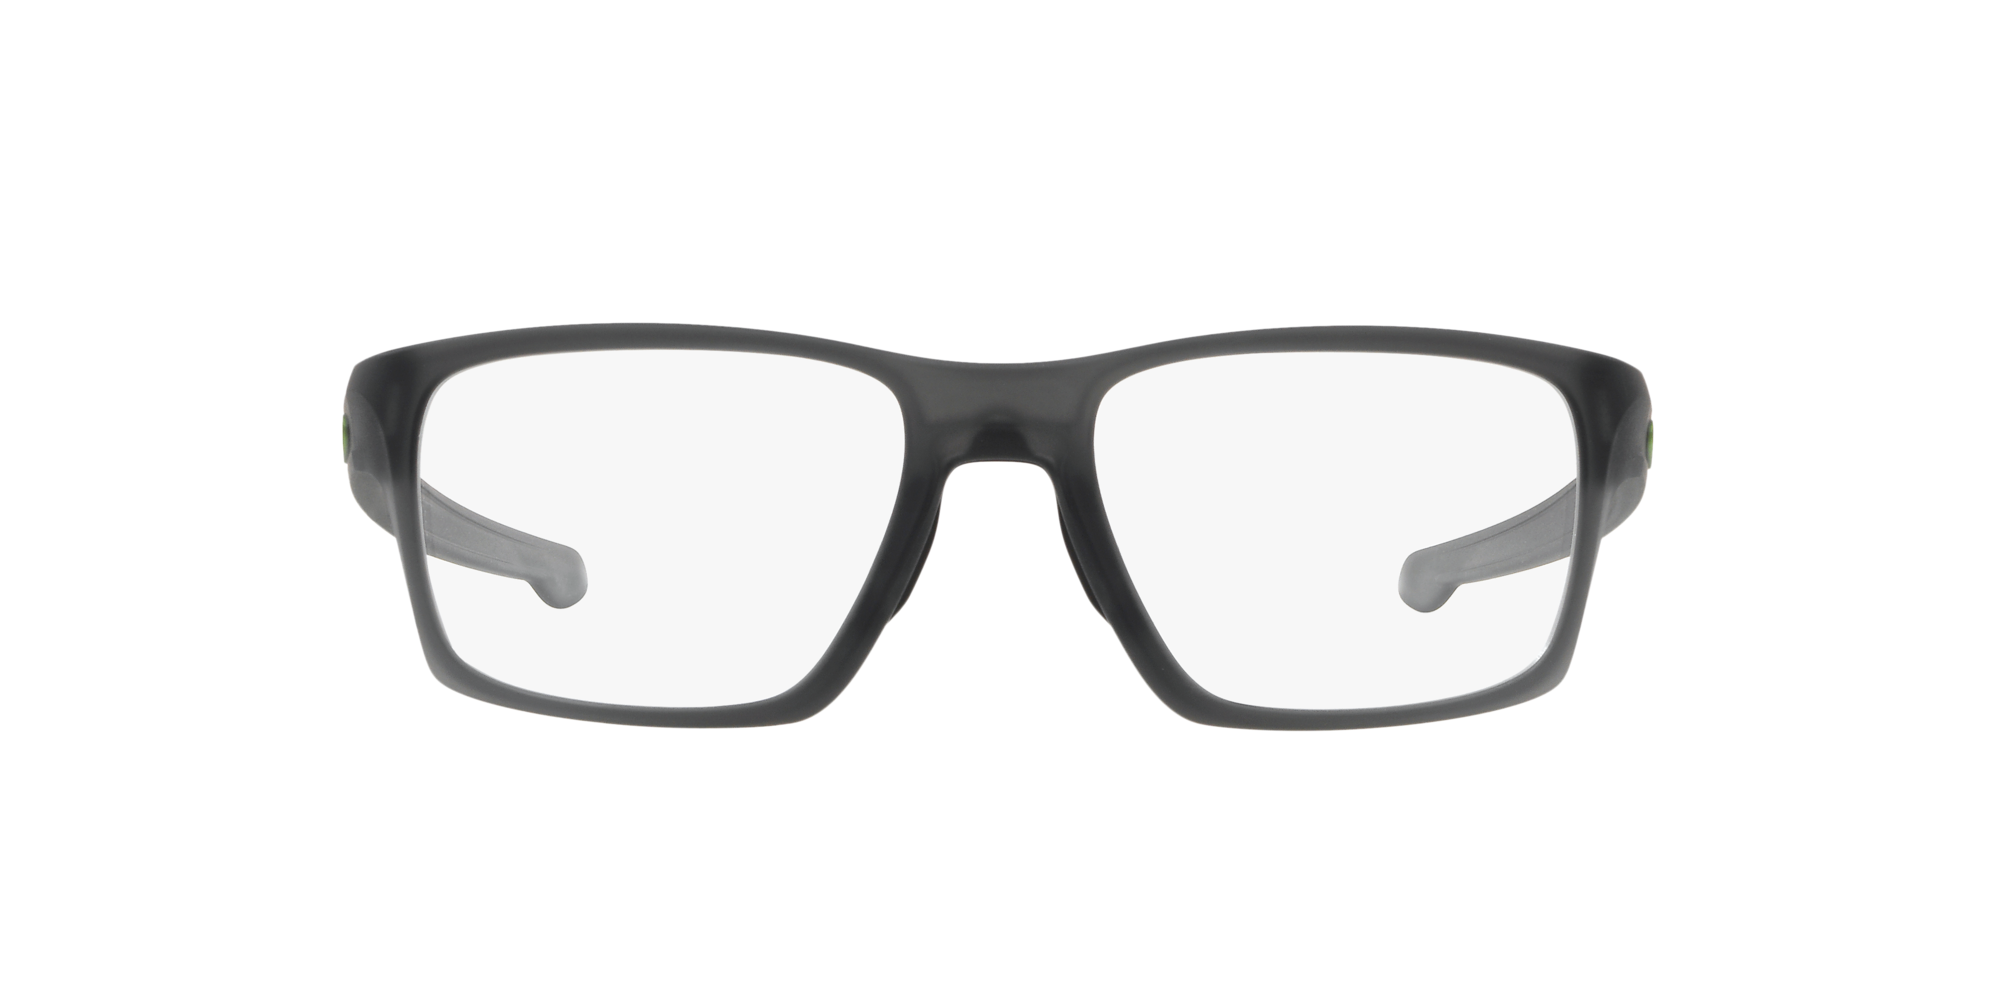 Image for OX8140 LITEBEAM from LensCrafters | Glasses, Prescription Glasses Online, Eyewear